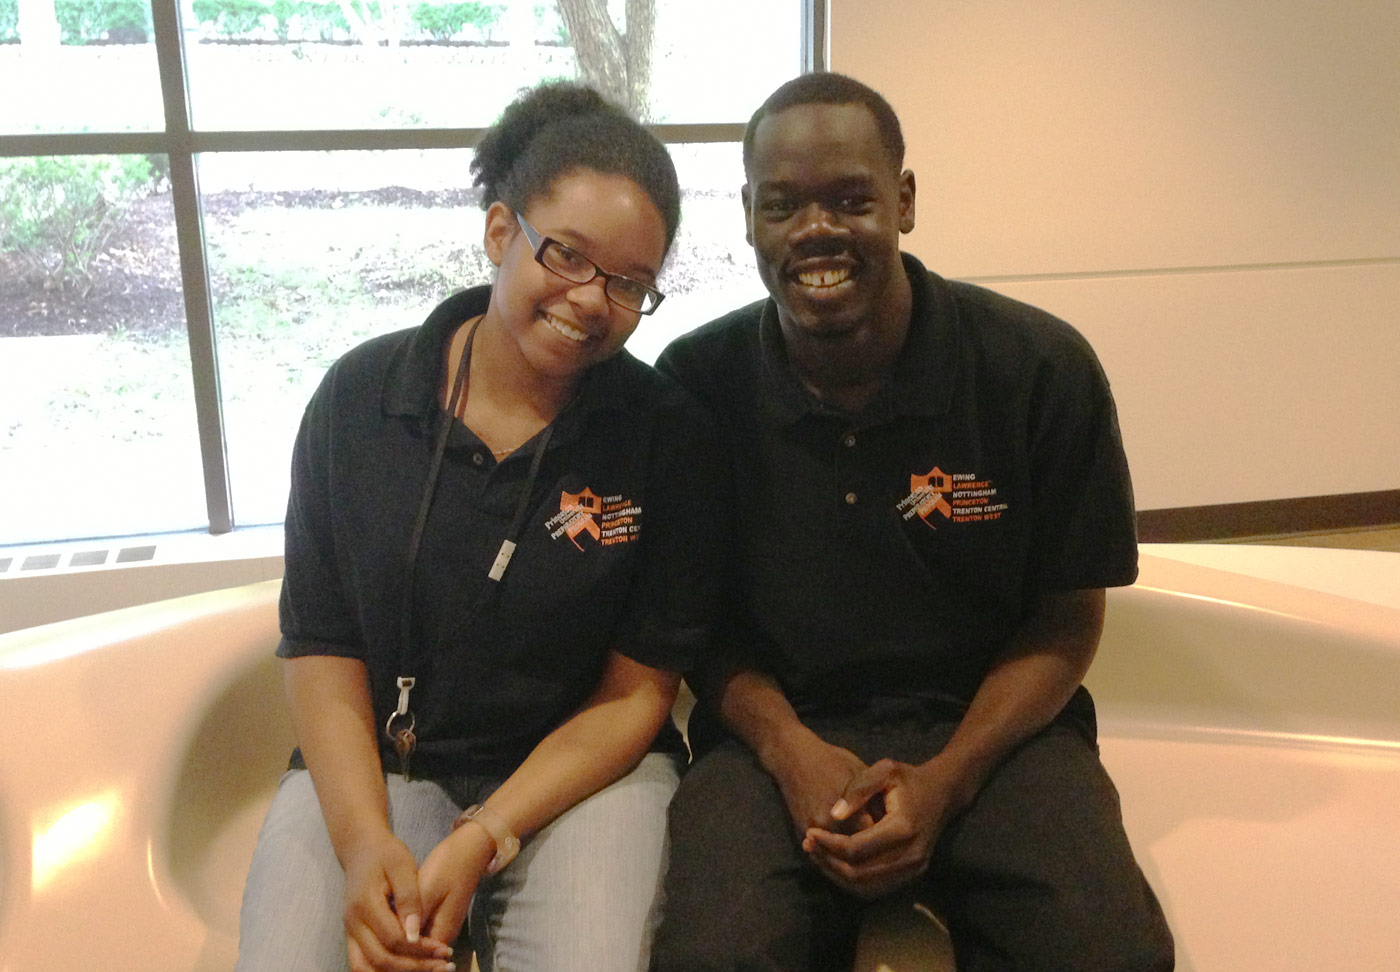 Two scholars from the Class of 2014 smiling as they wait for their tour at Rutgers University - Camden to begin.